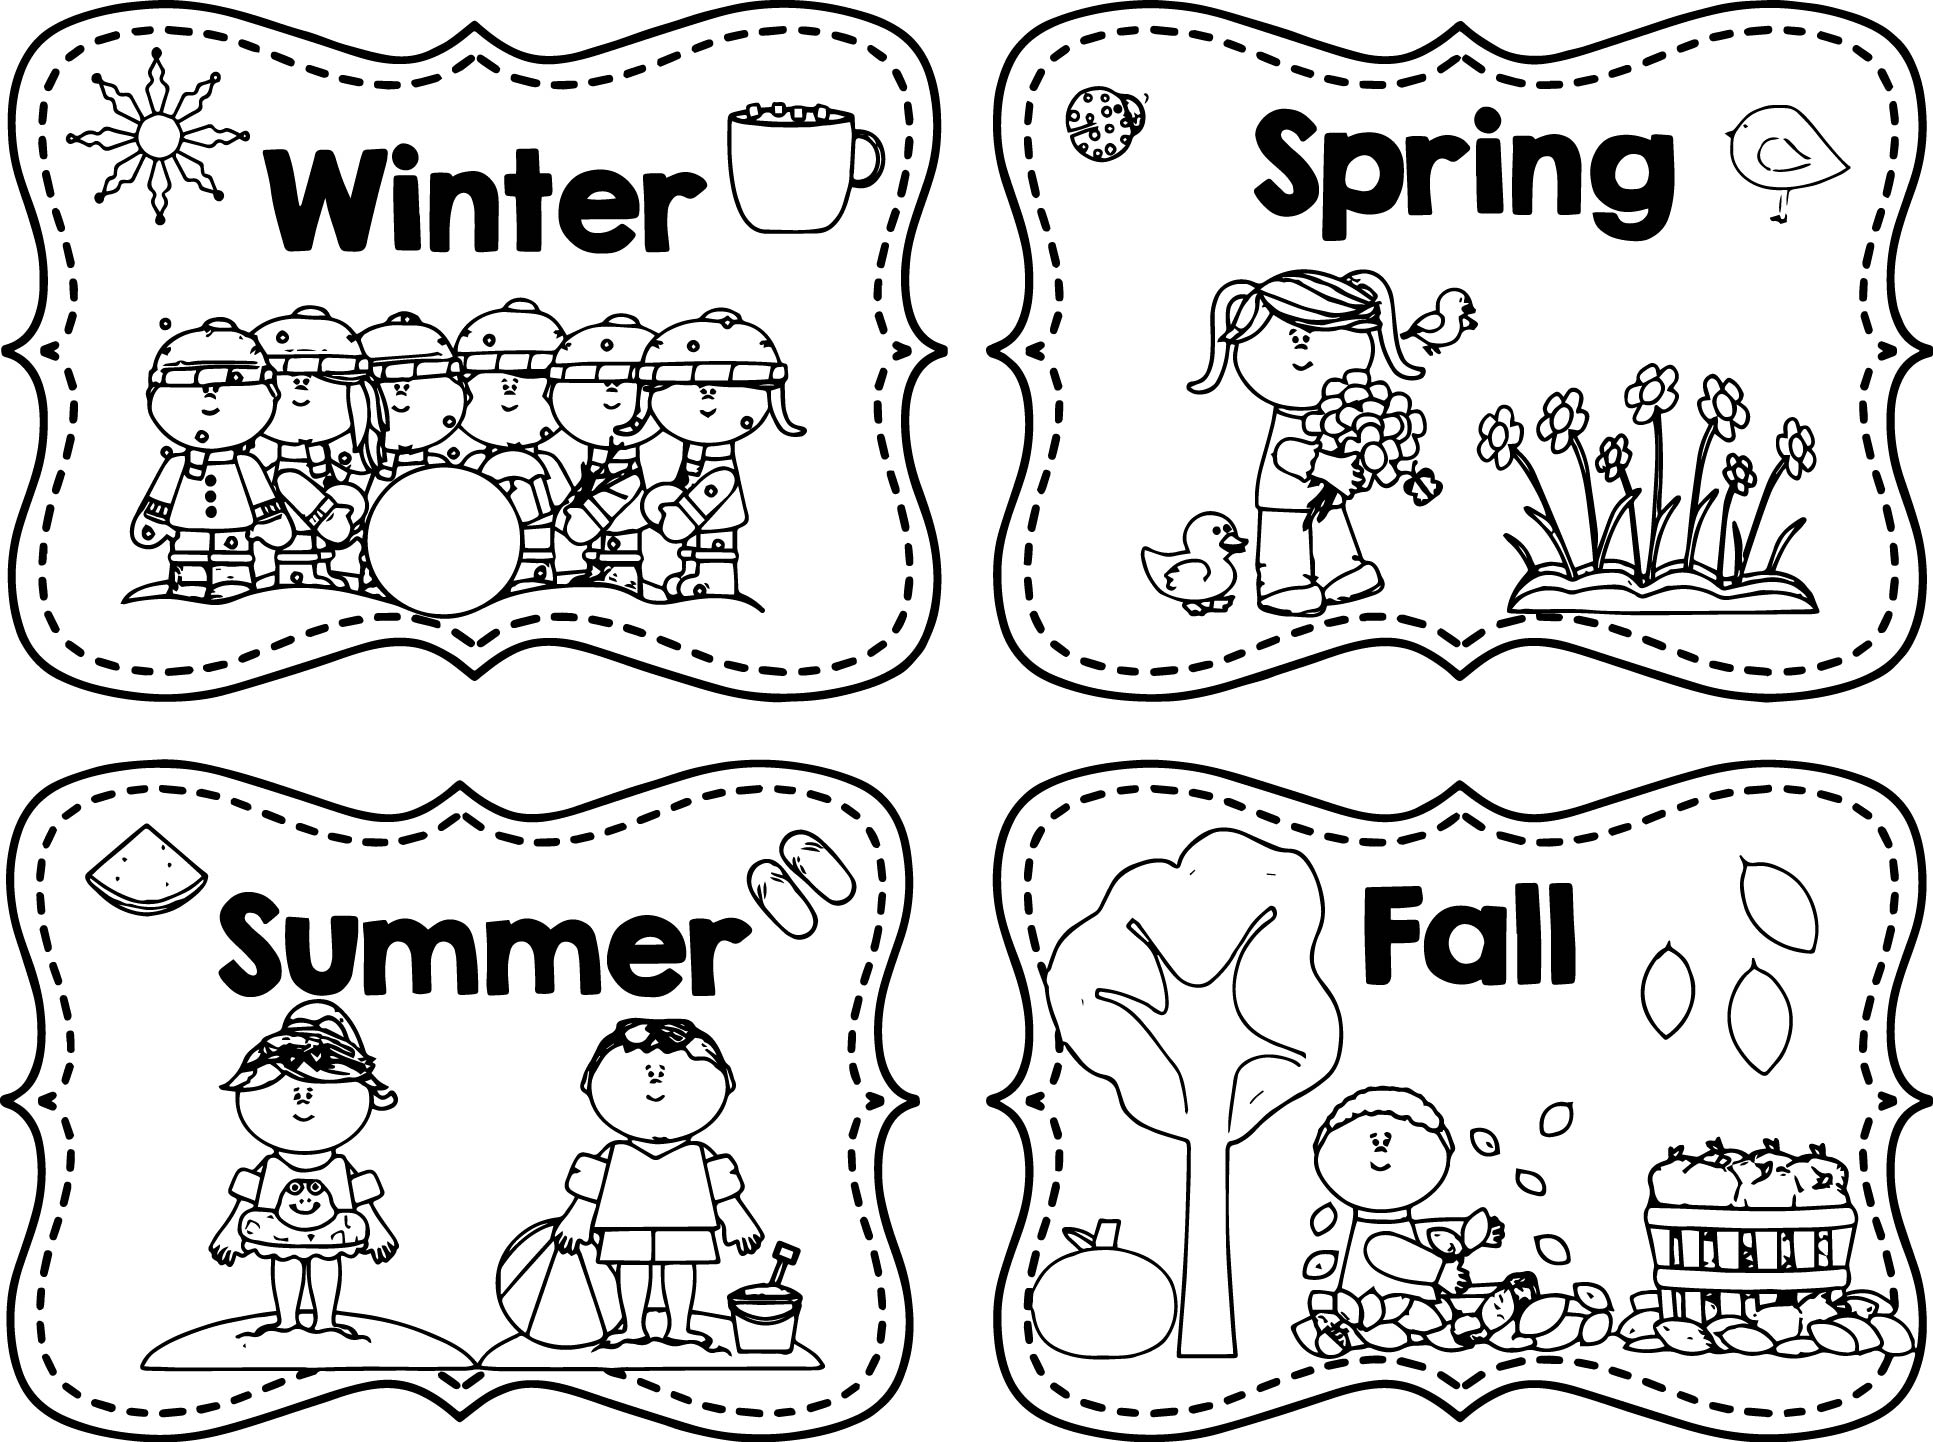 seasons coloring pages four seasons trees coloring vector illustration stock pages seasons coloring